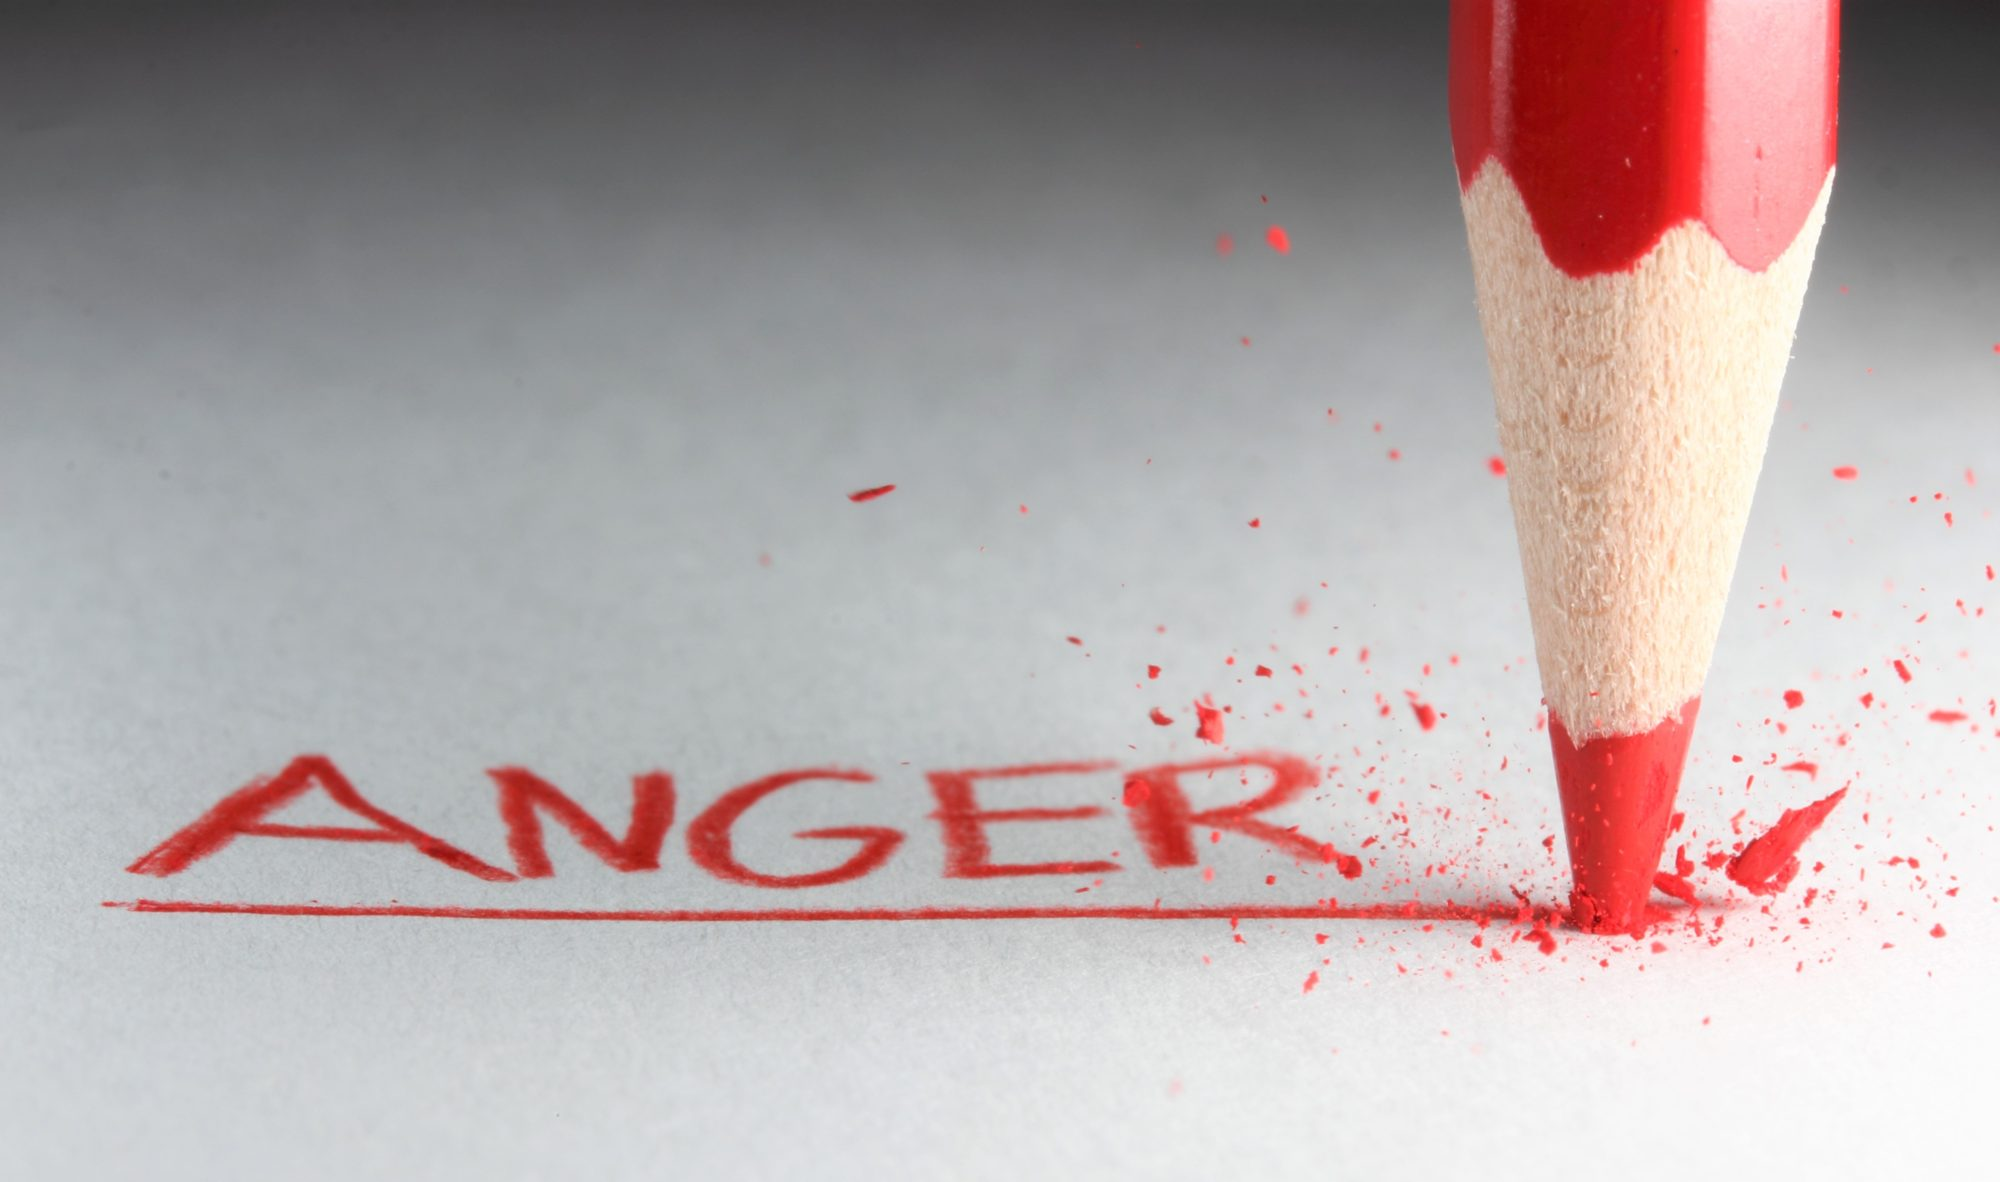 Anger Word